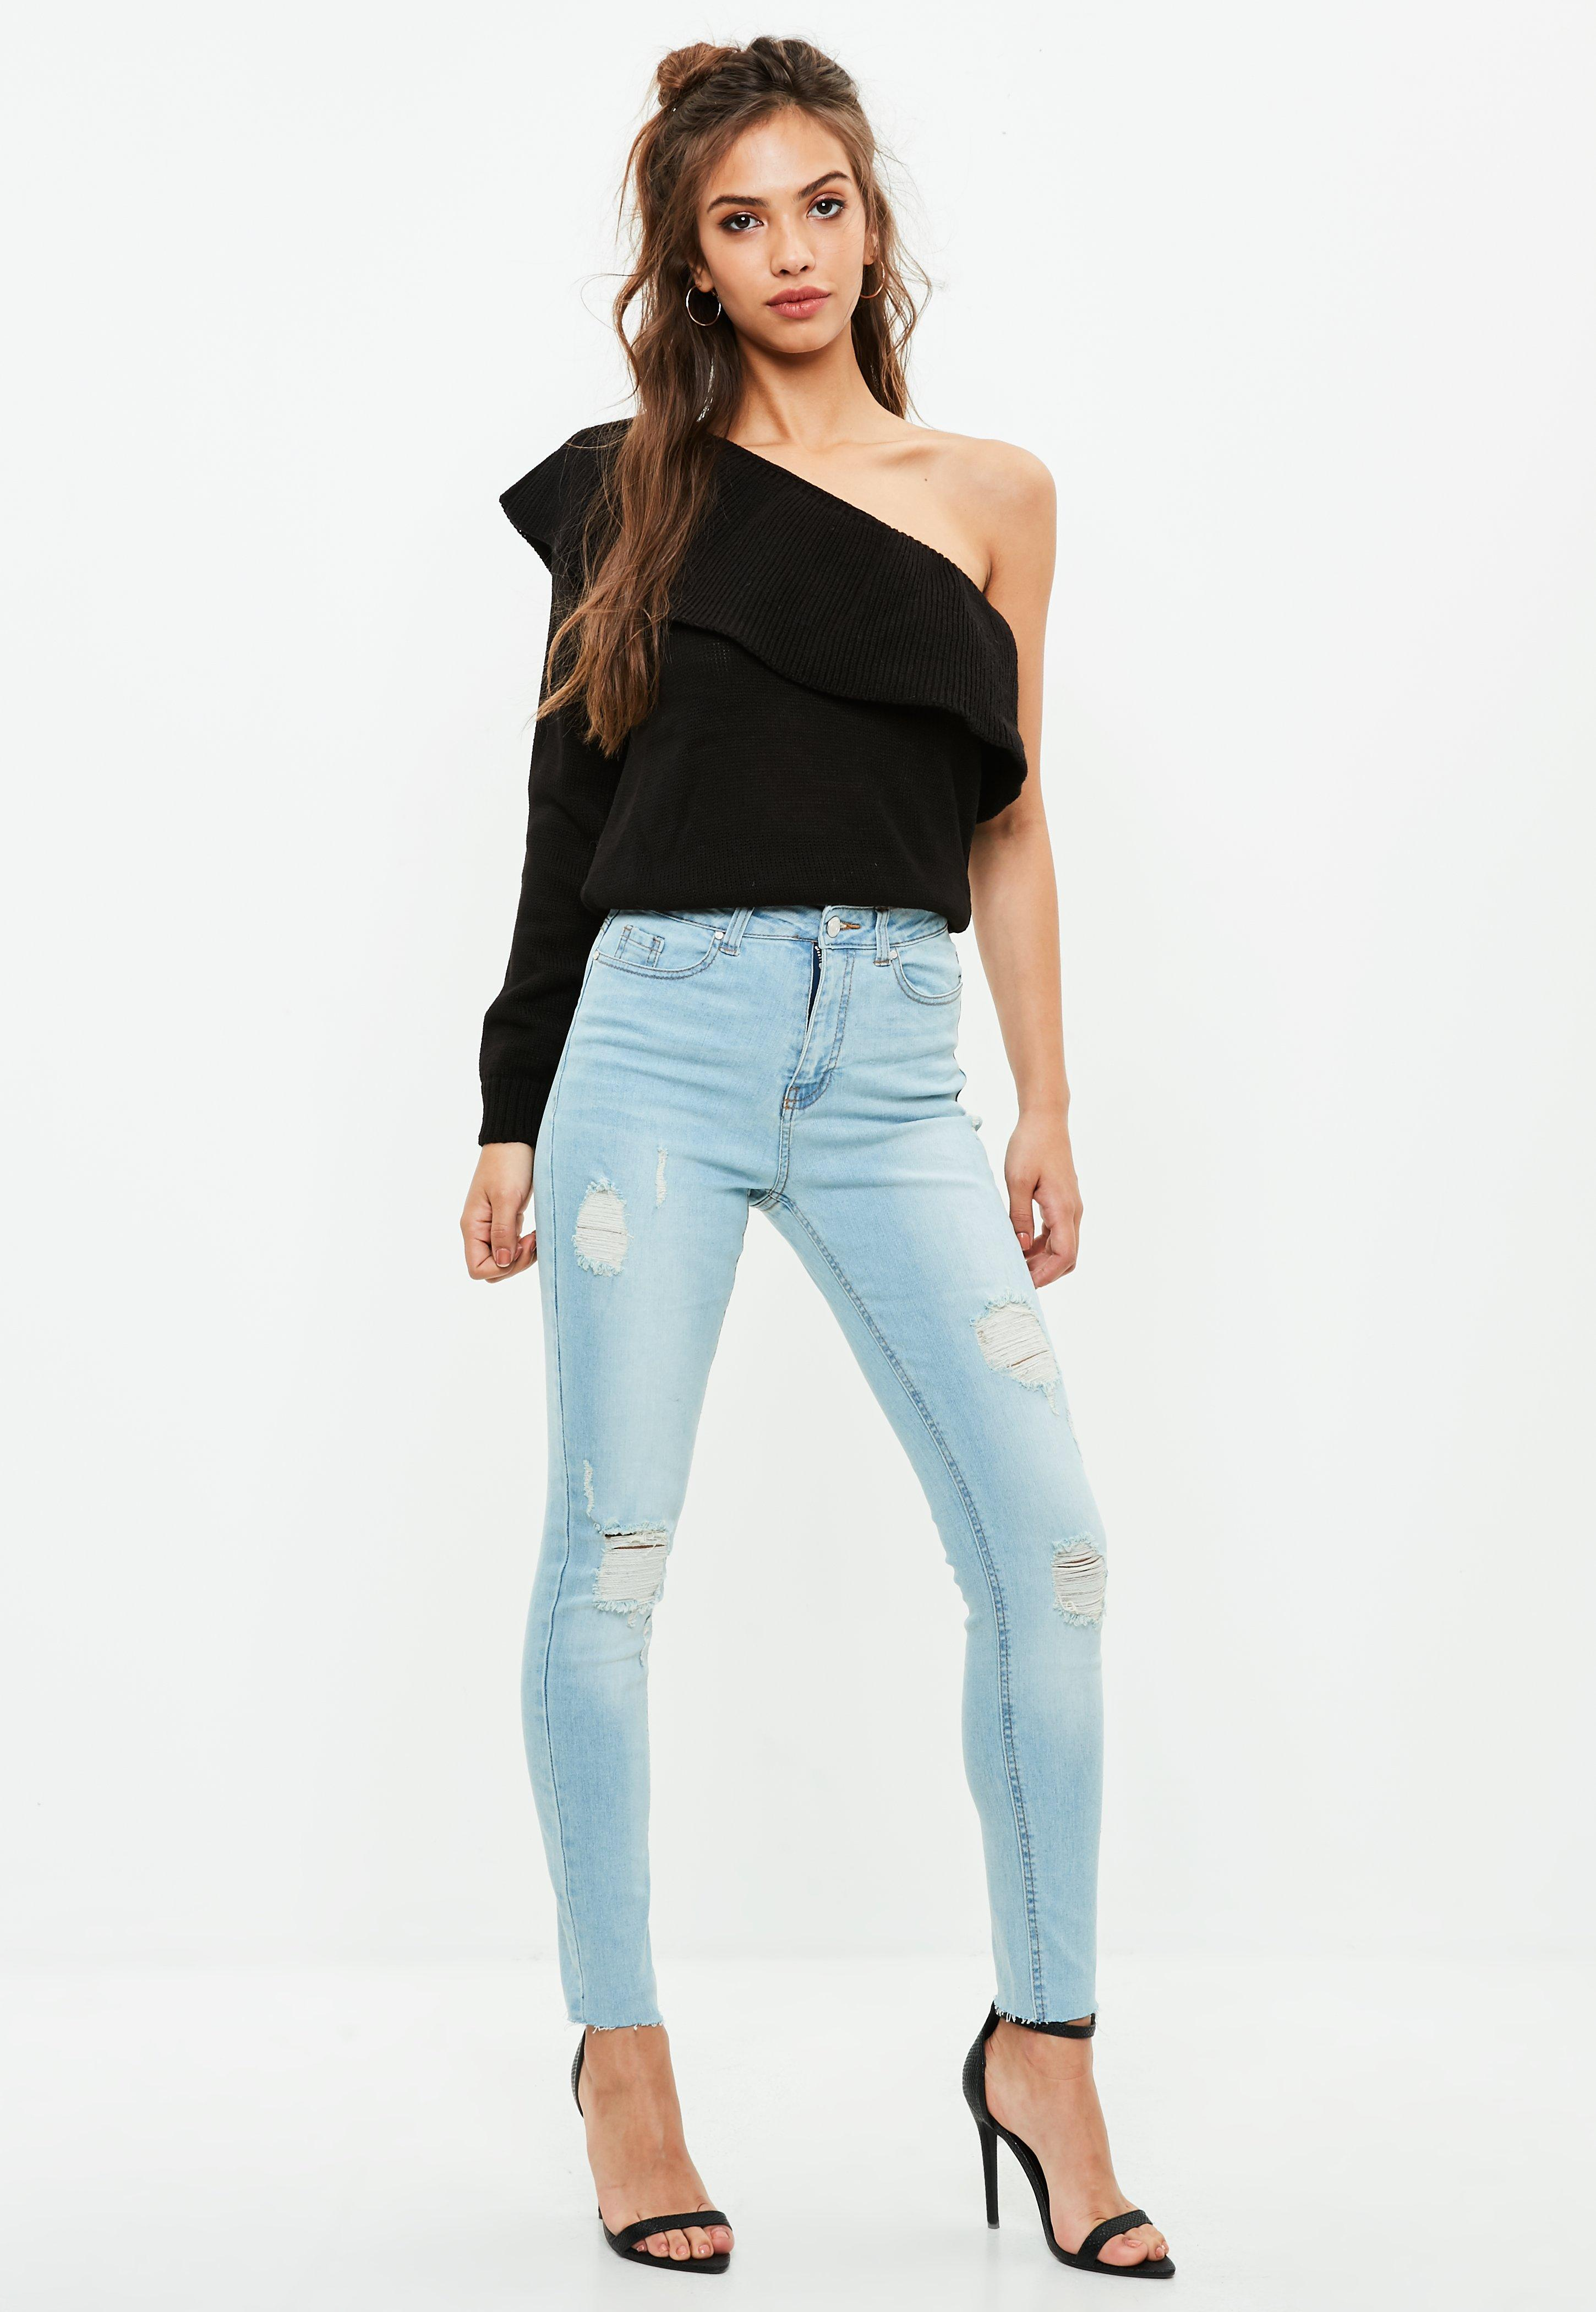 Blue Sinner High Waisted Ripped Skinny Jeans   Missguided Ireland